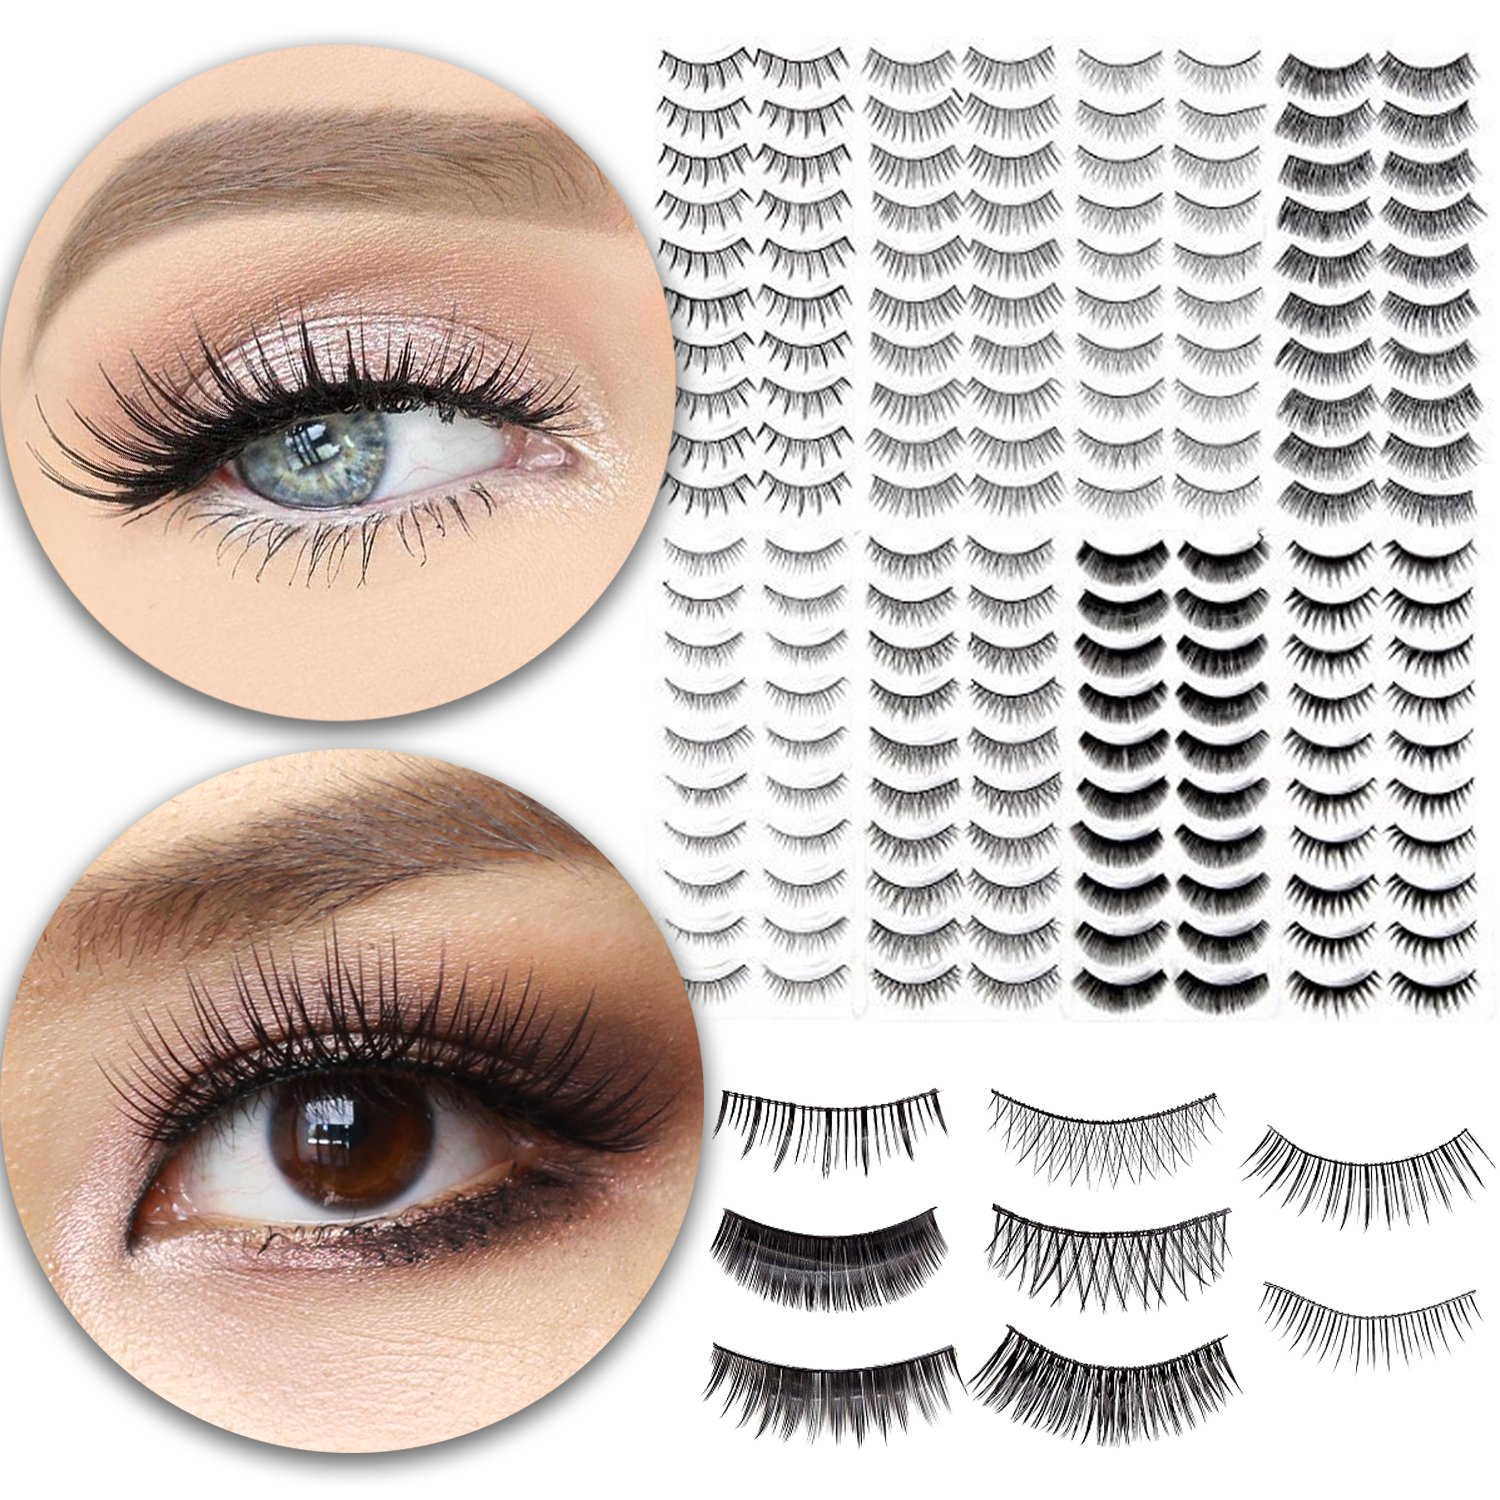 112599a39d3 Amazon.com : Make Up Set of 80 Pairs Fake Eyelashes Classic False Eyes  Lashes Artificial Extensions In 8 Different Styles and Black Color : Beauty